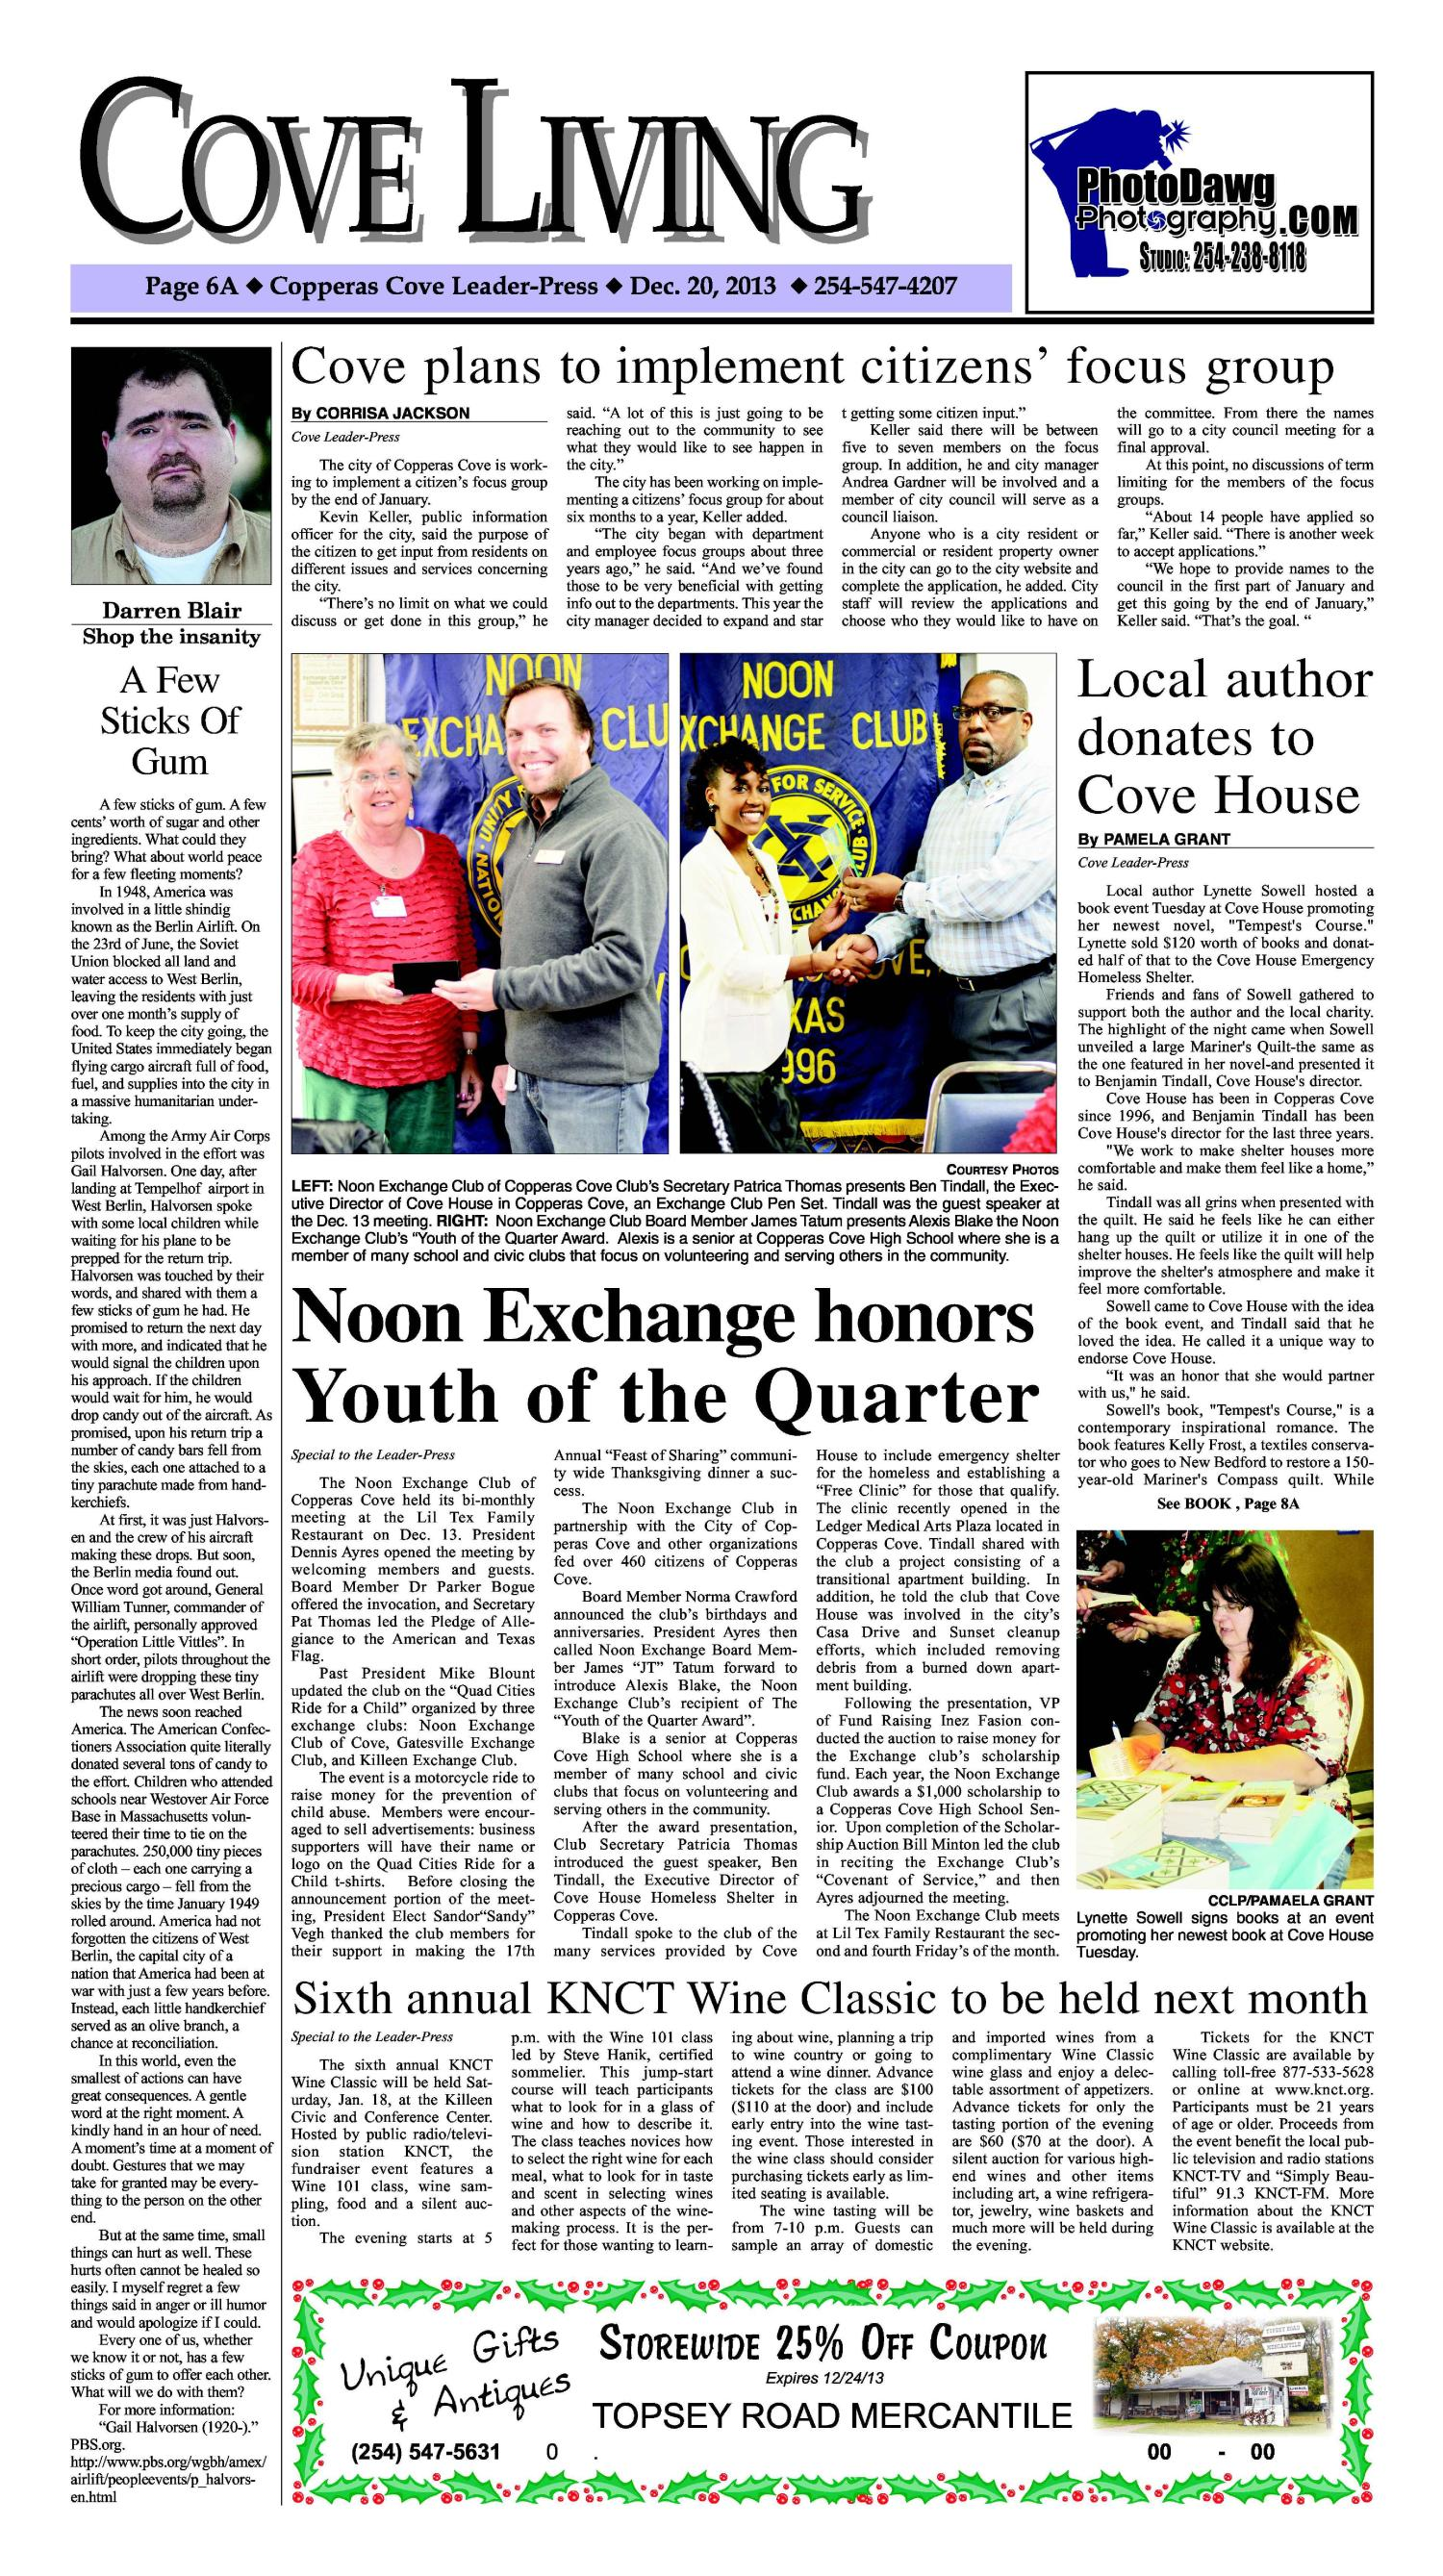 Copperas Cove Leader-Press (Copperas Cove, Tex.), Vol. 119, No. 23, Ed. 1 Friday, December 20, 2013                                                                                                      [Sequence #]: 6 of 16